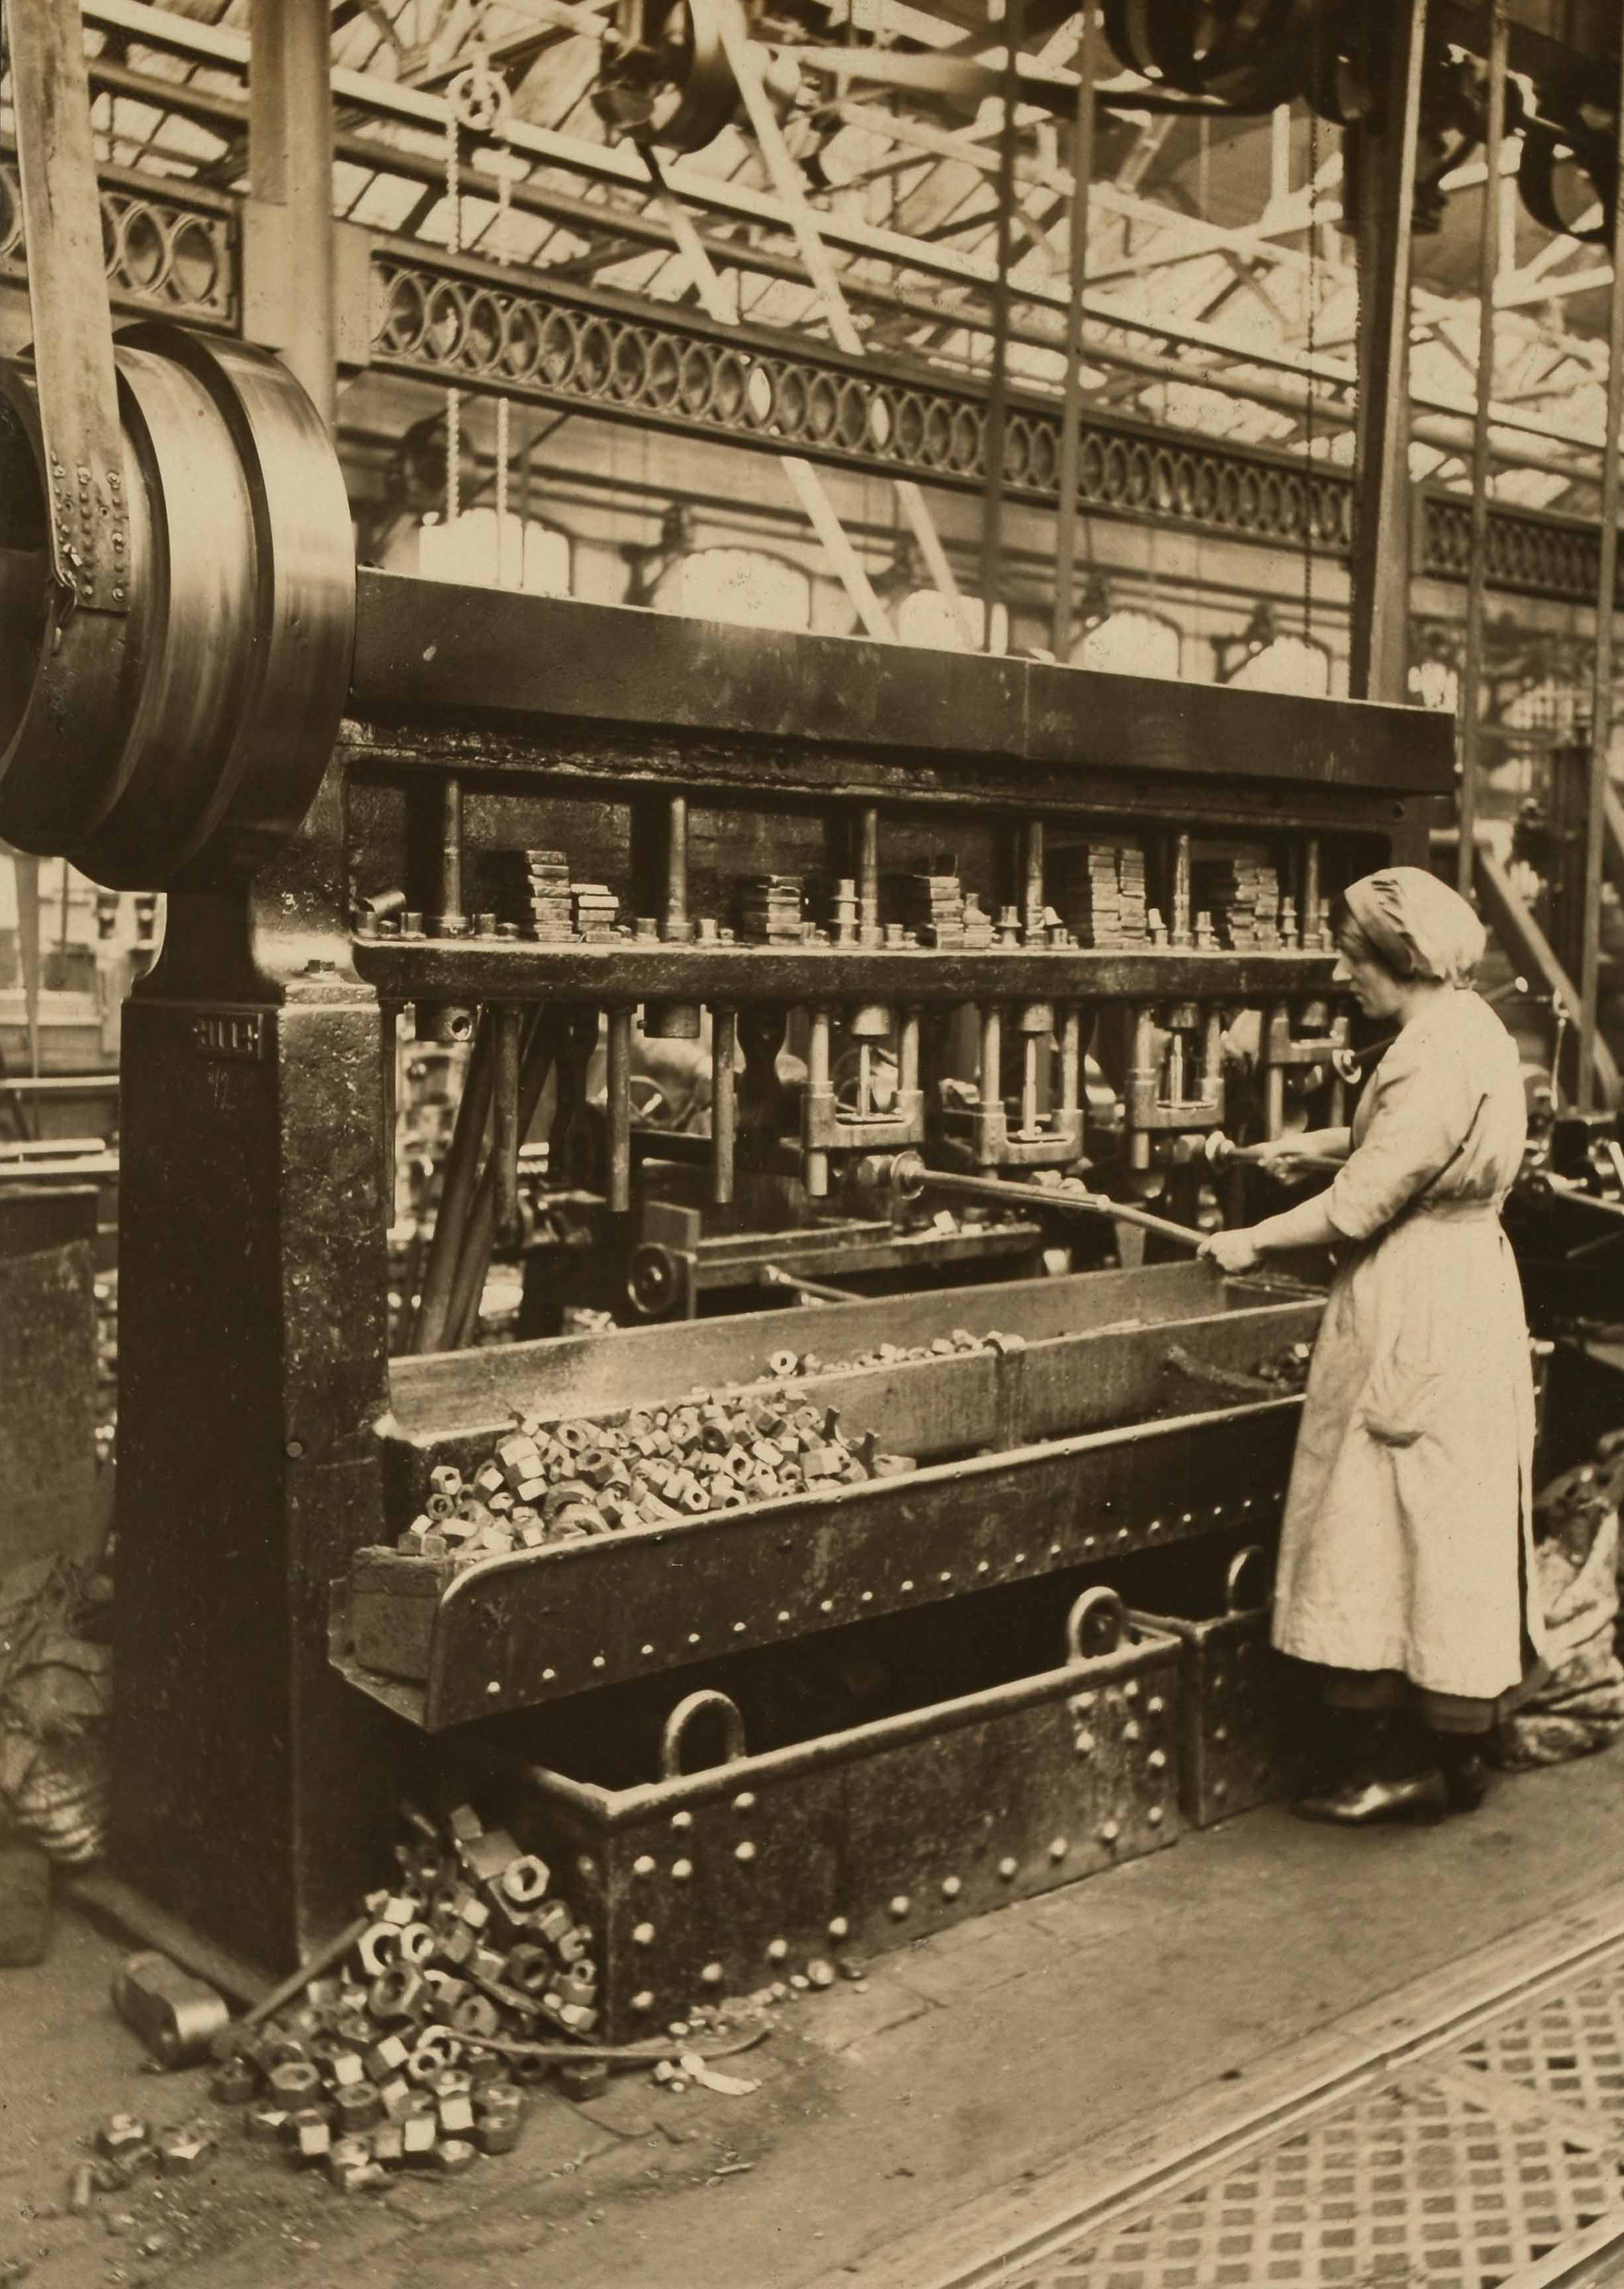 RAIL 343/725/14a Female workers on the Lancashire and Yorkshire Railway, machine shop, 1917